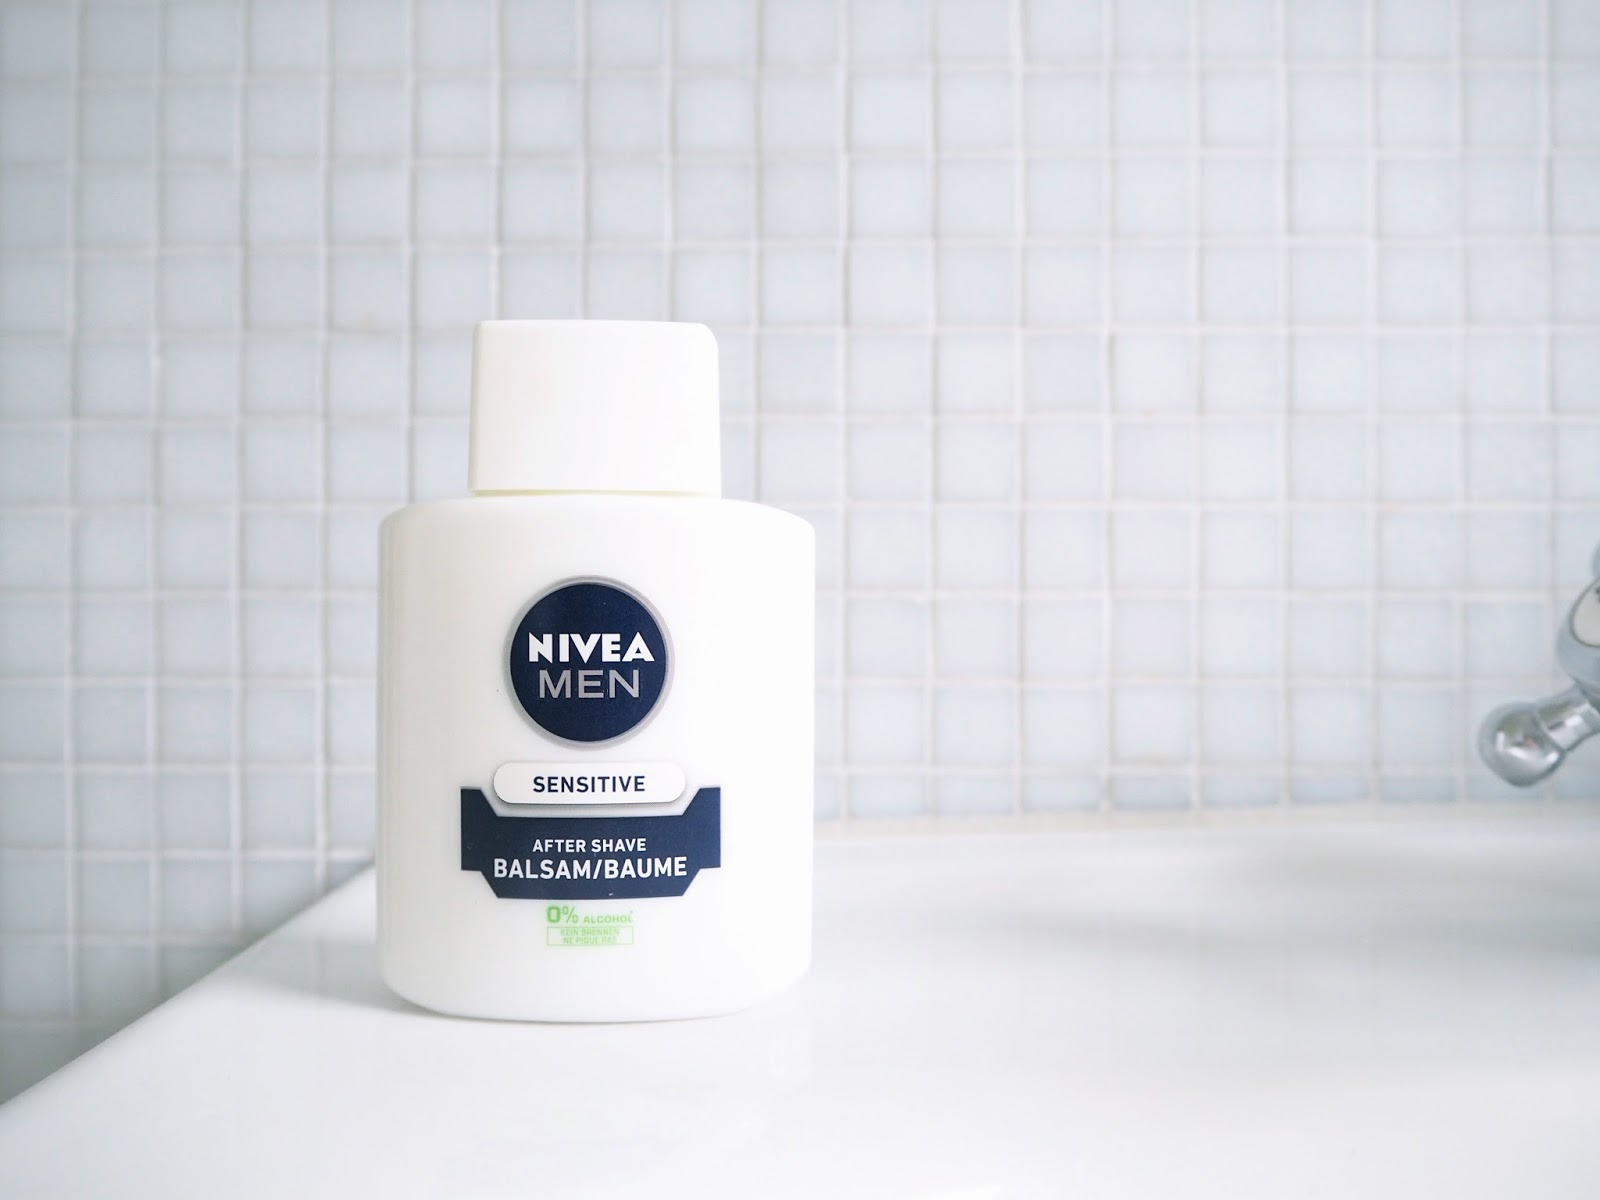 Nivea Men Post Shave Balm as Primer, aftershave balm as primer, cheap primer, makeup primer, review